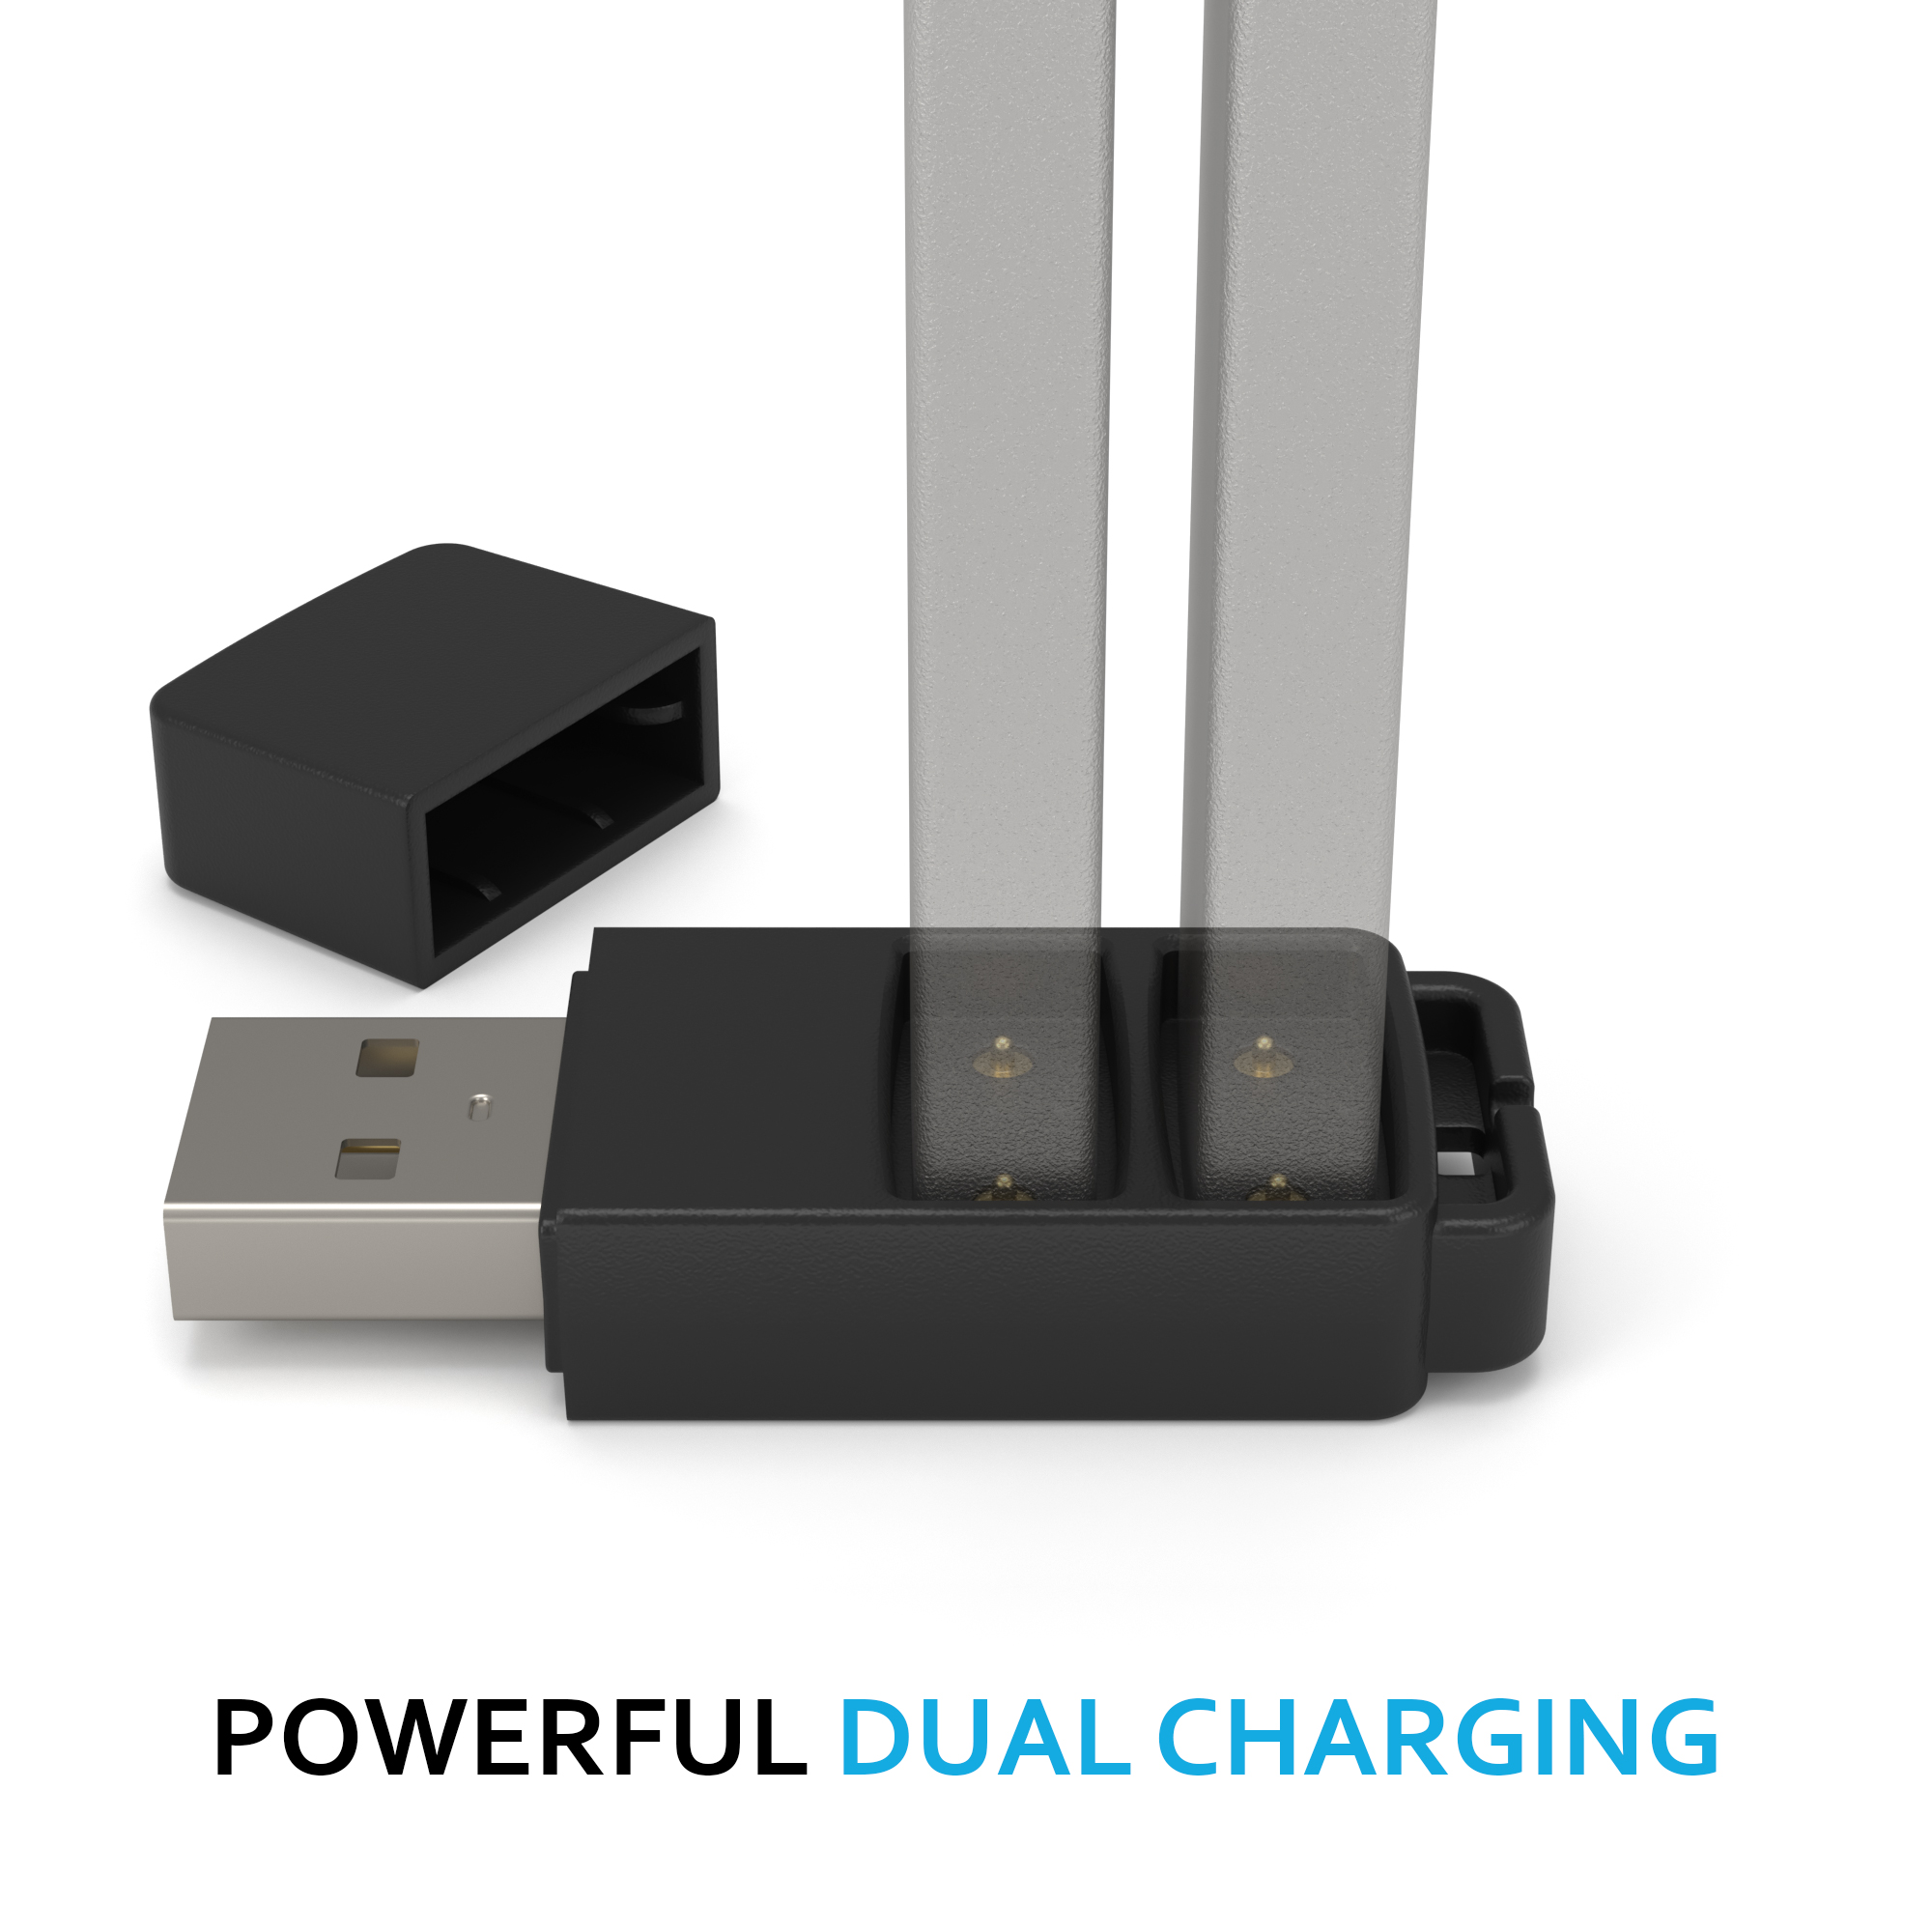 DUET Dual Charger for JUUL Battery, Charge TWO JUUL Batteries